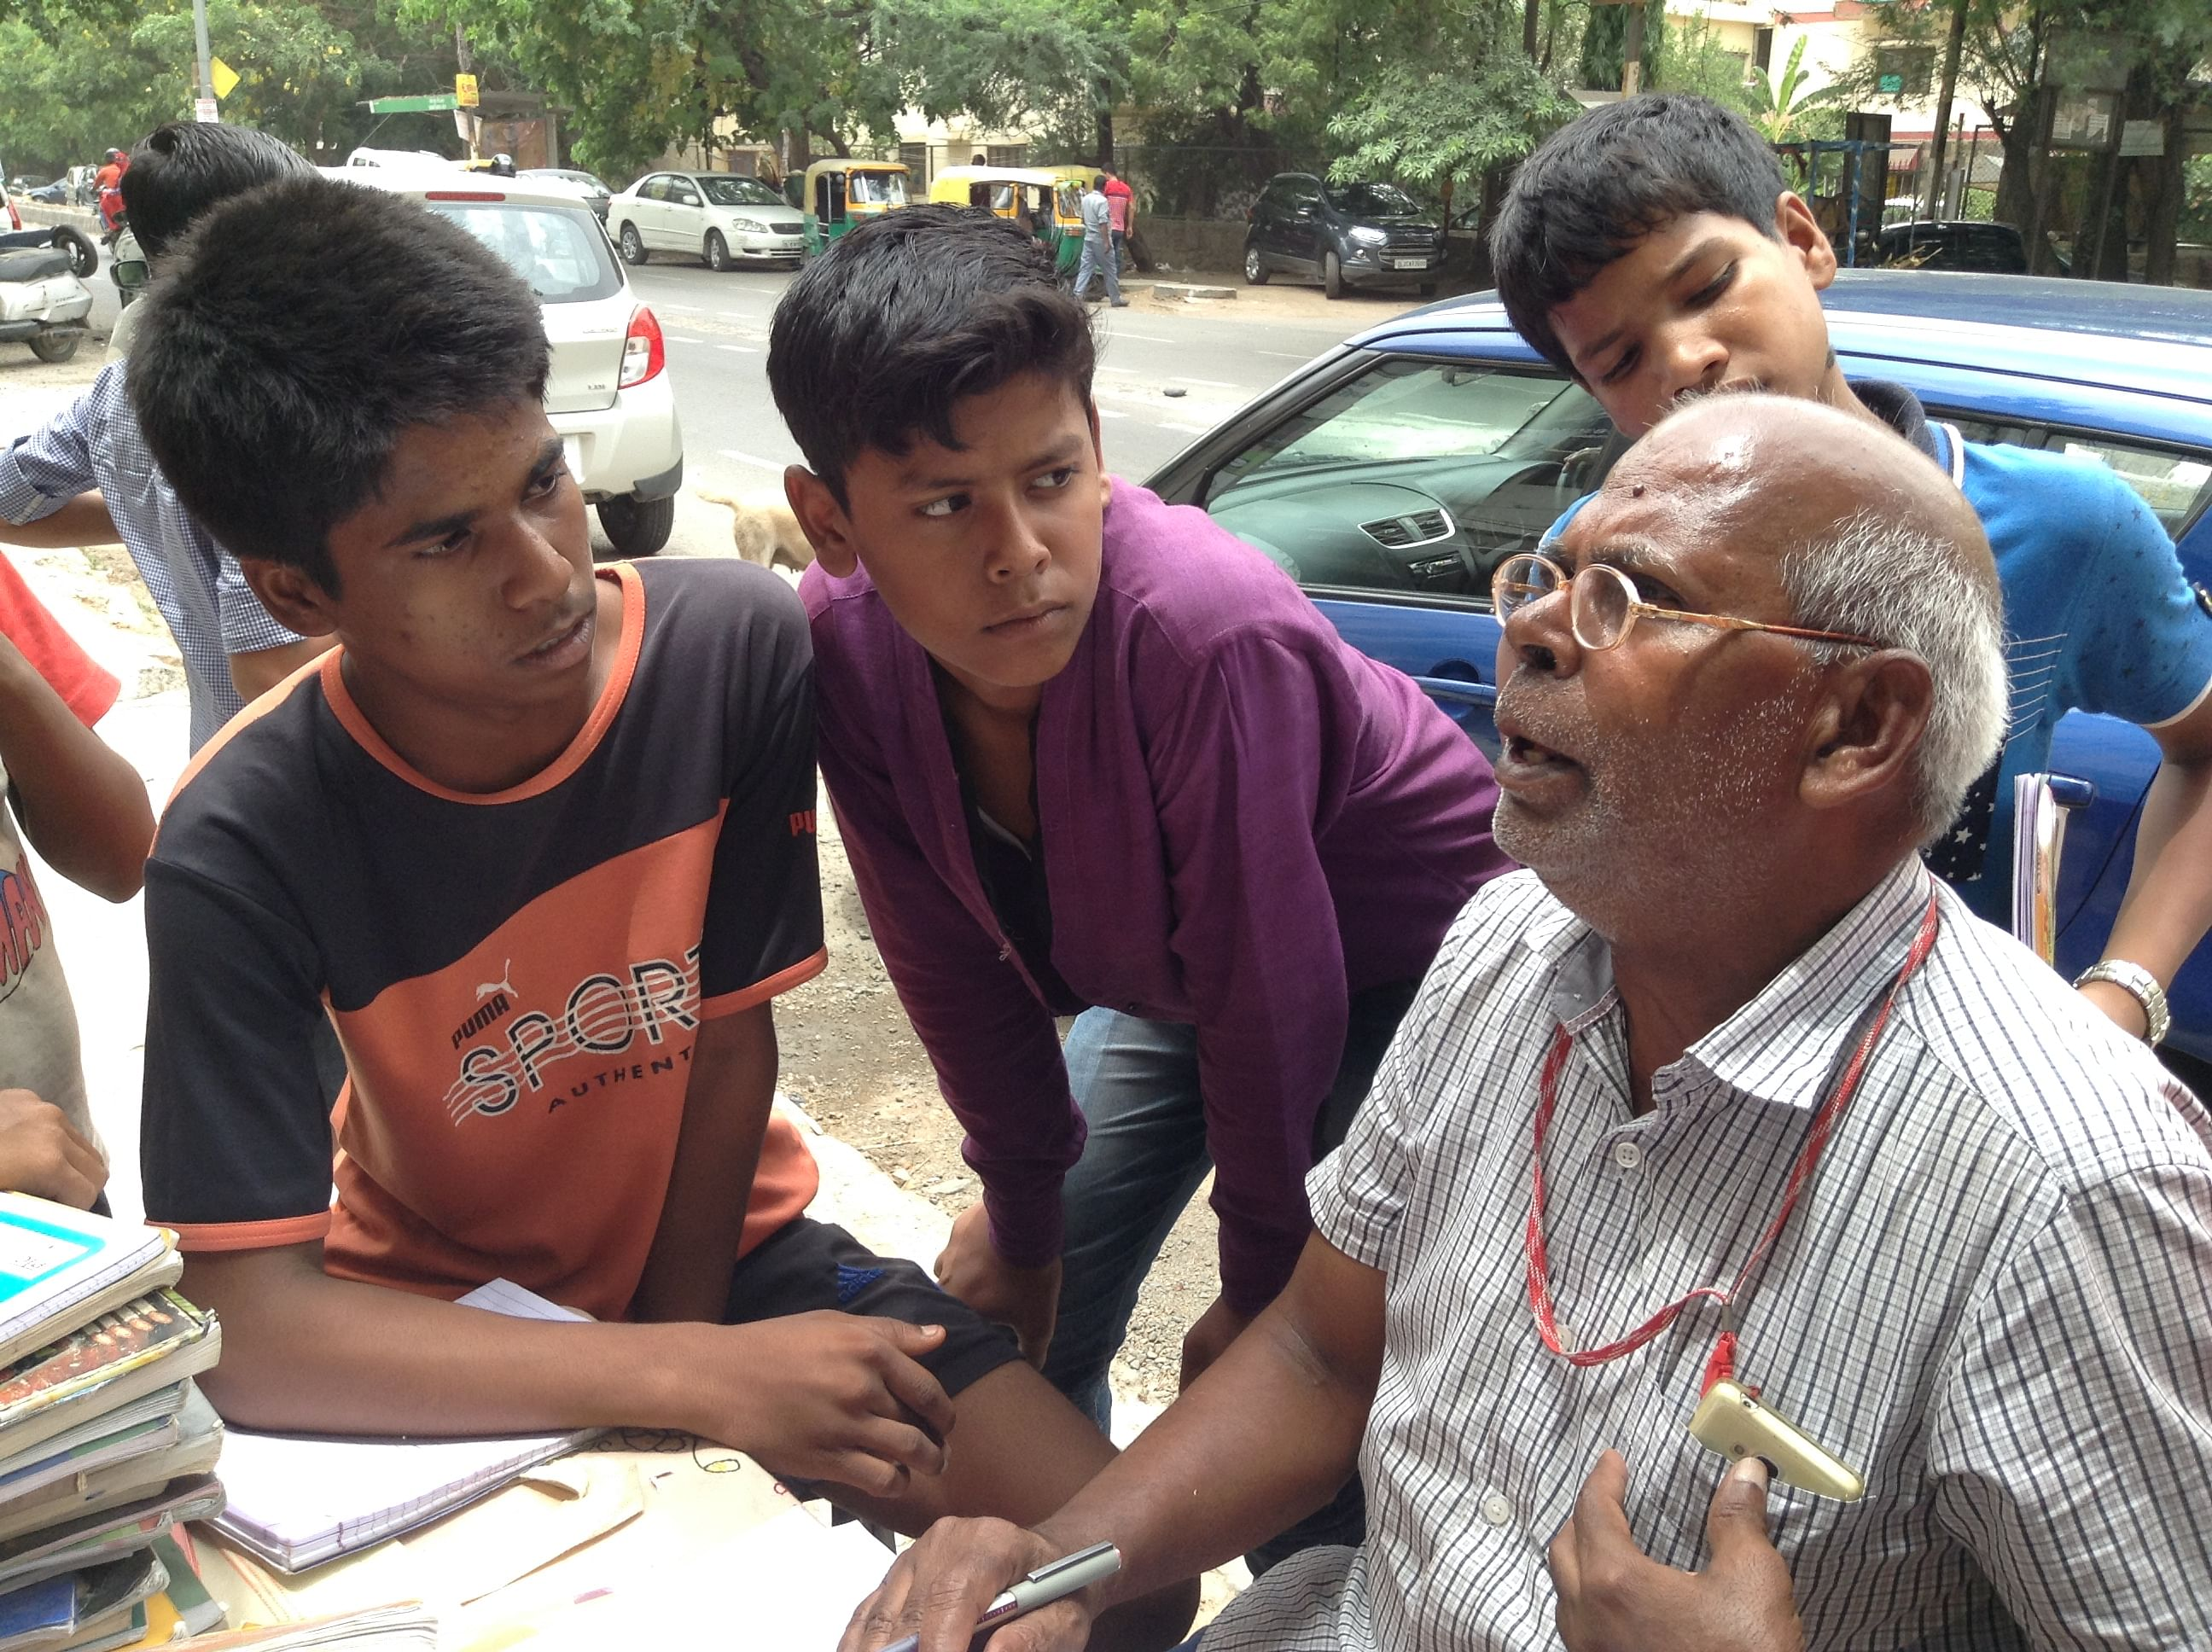 Uncleji teaches from his heart and the children listen intently